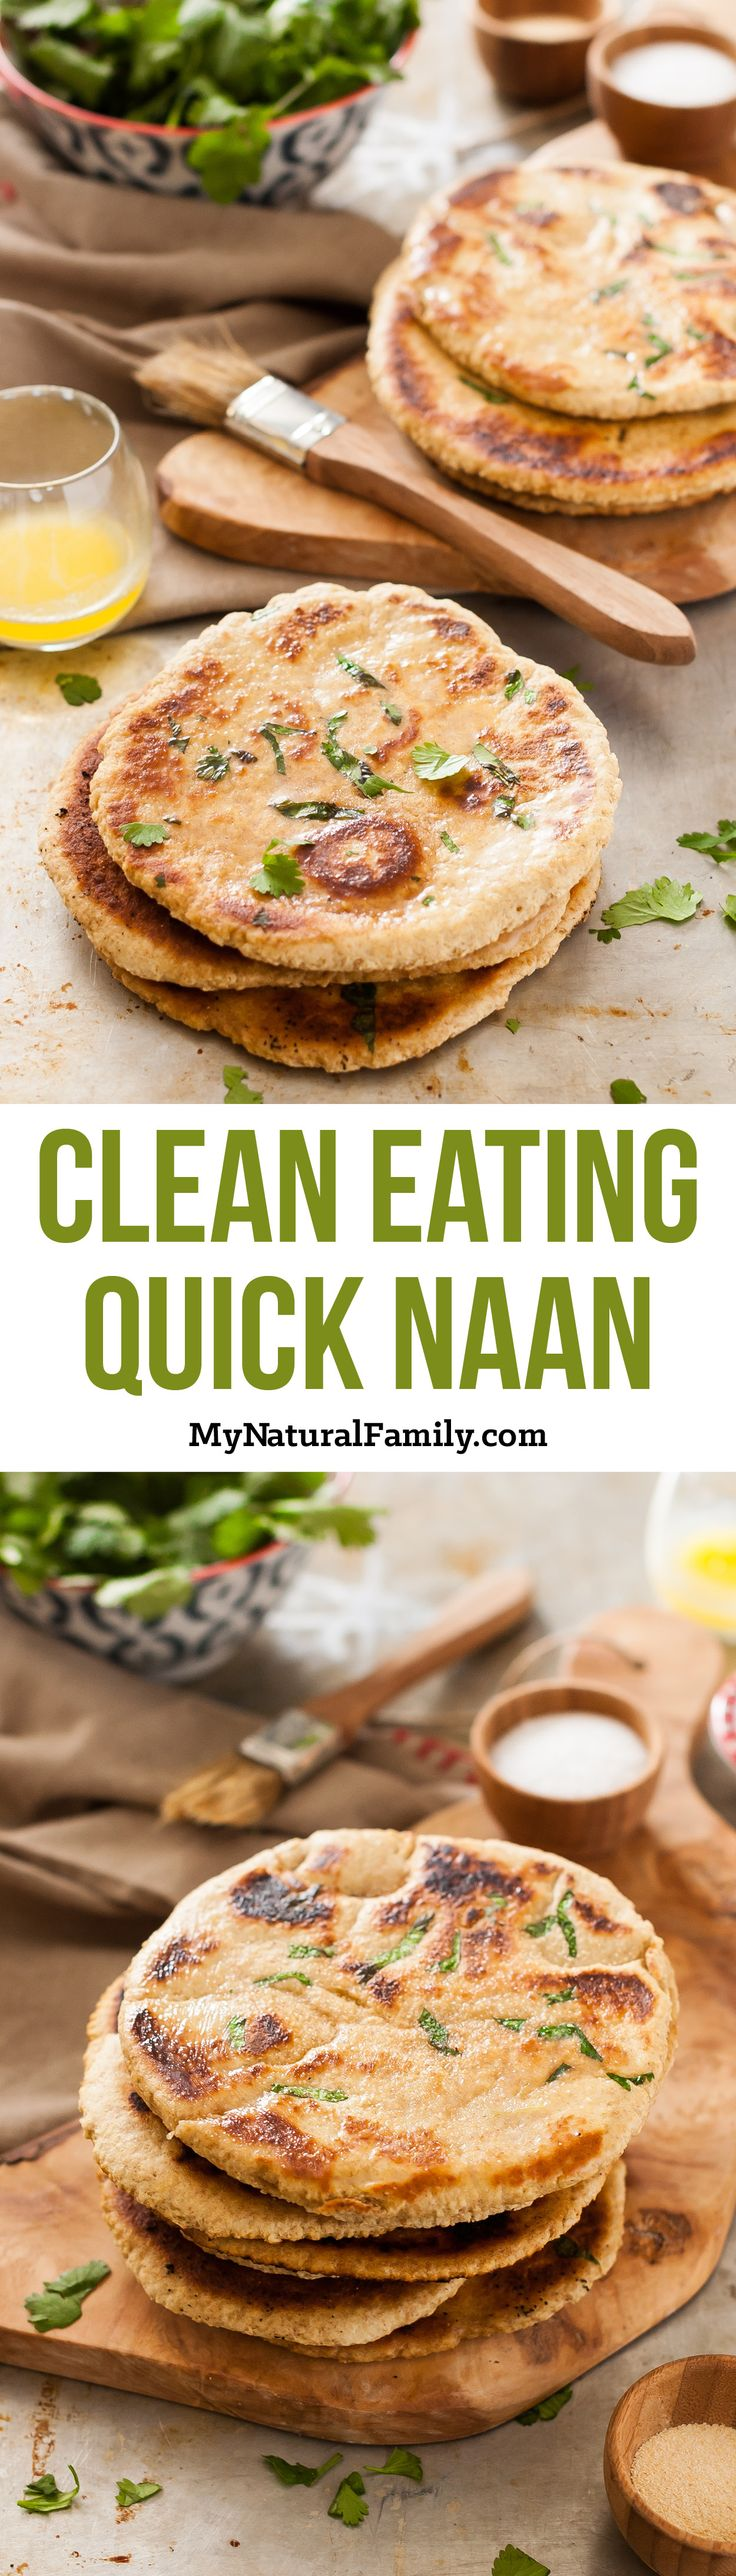 Quick Naan Recipe {Clean Eating} - I love how fast these come together since they don't have yeast and they are really easy.